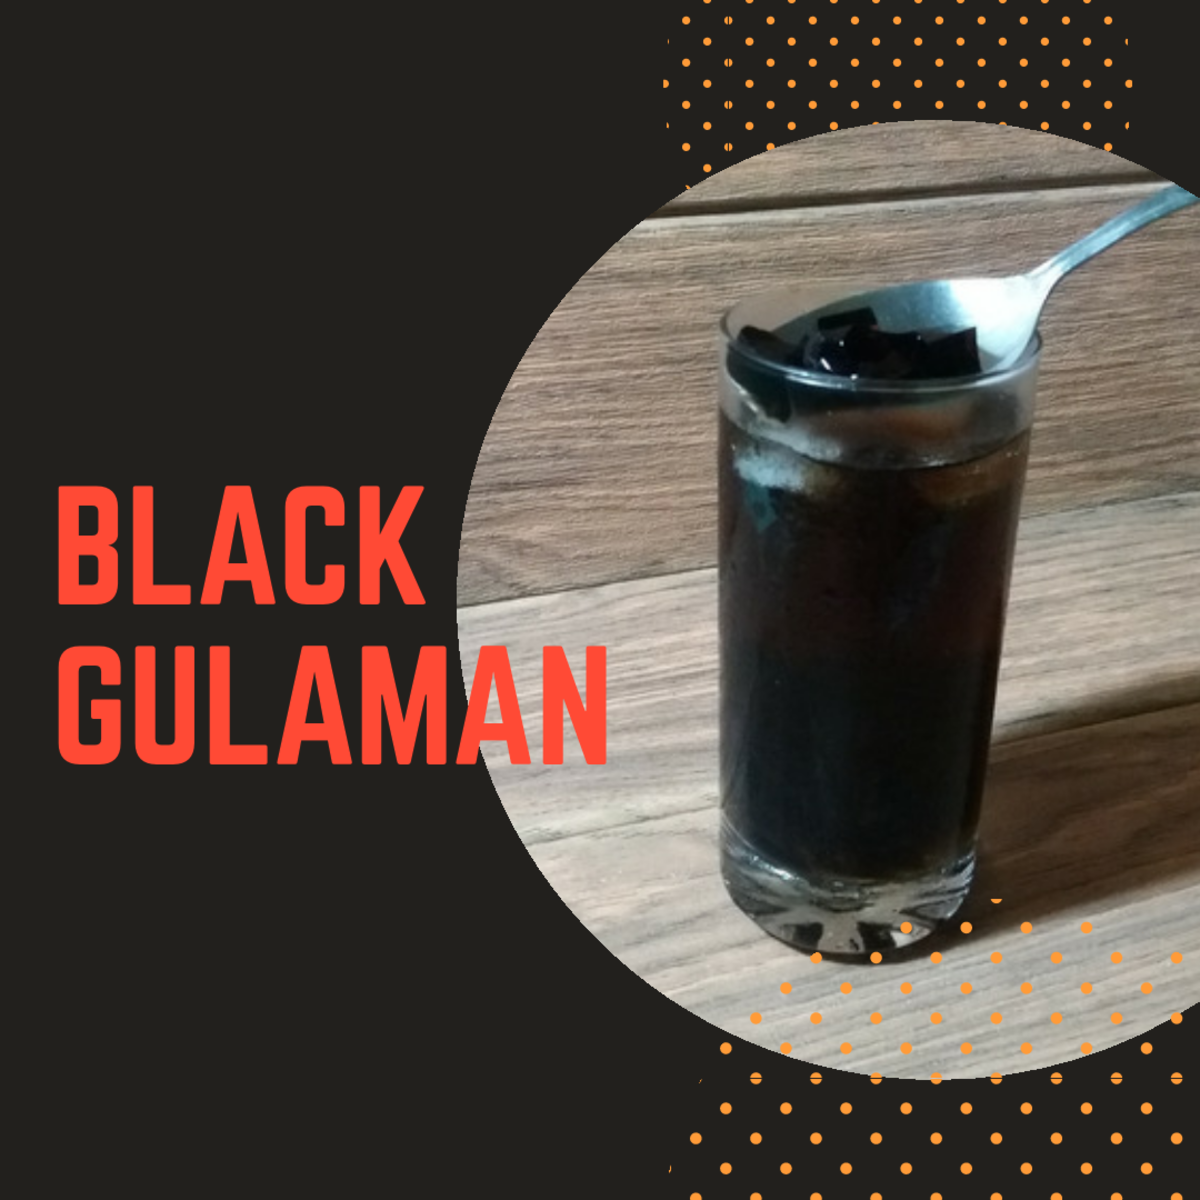 How to Make Black Gulaman